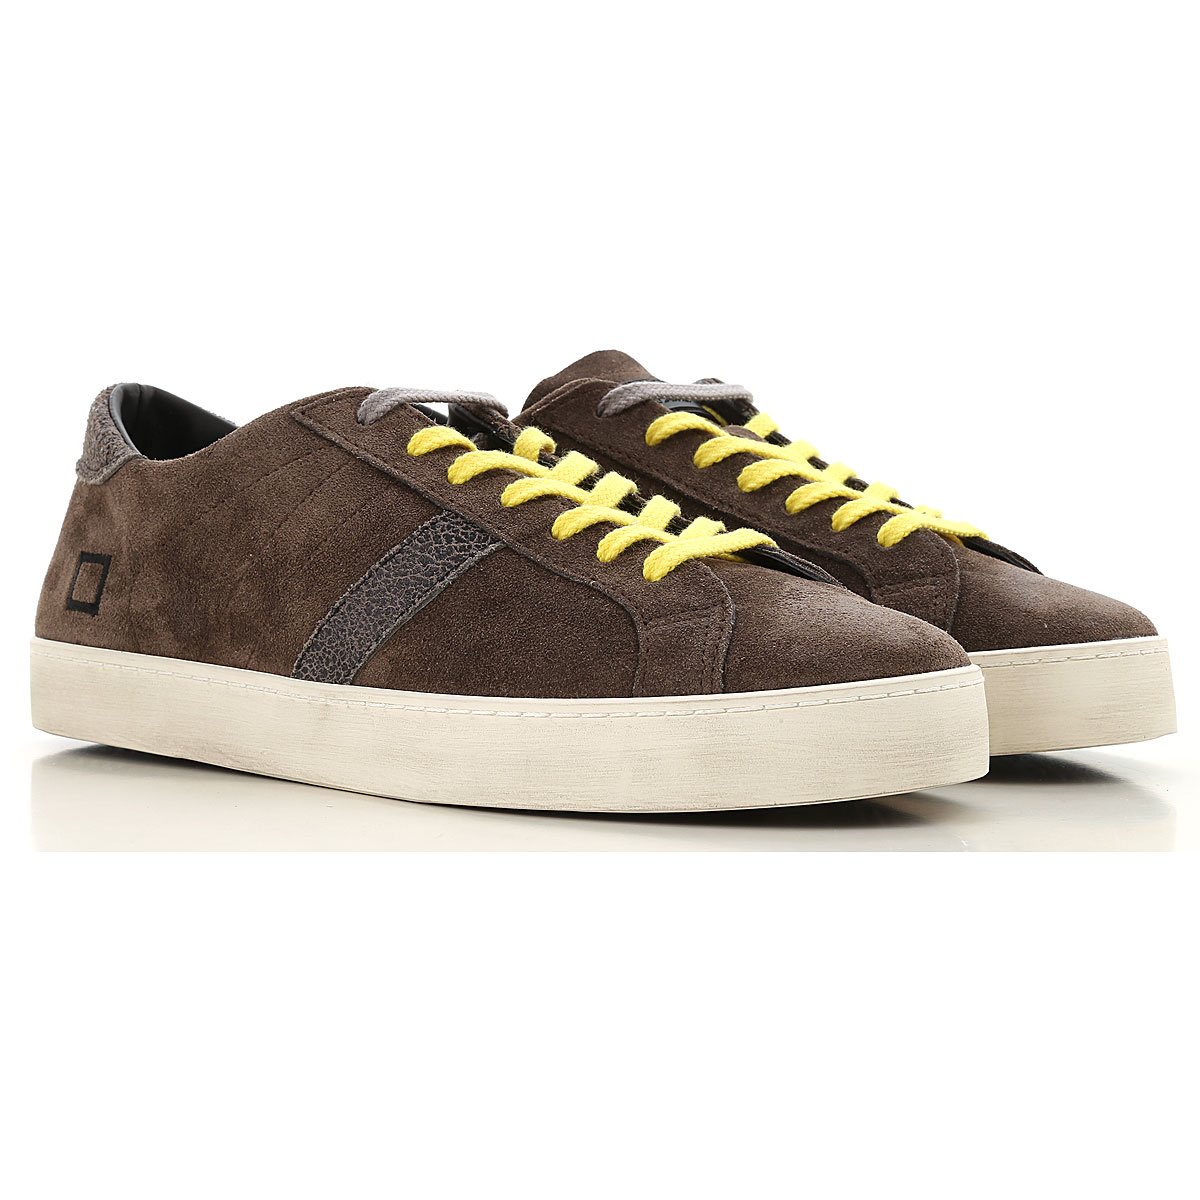 D.A.T.E. Sneakers for Men On Sale Mud SE - GOOFASH